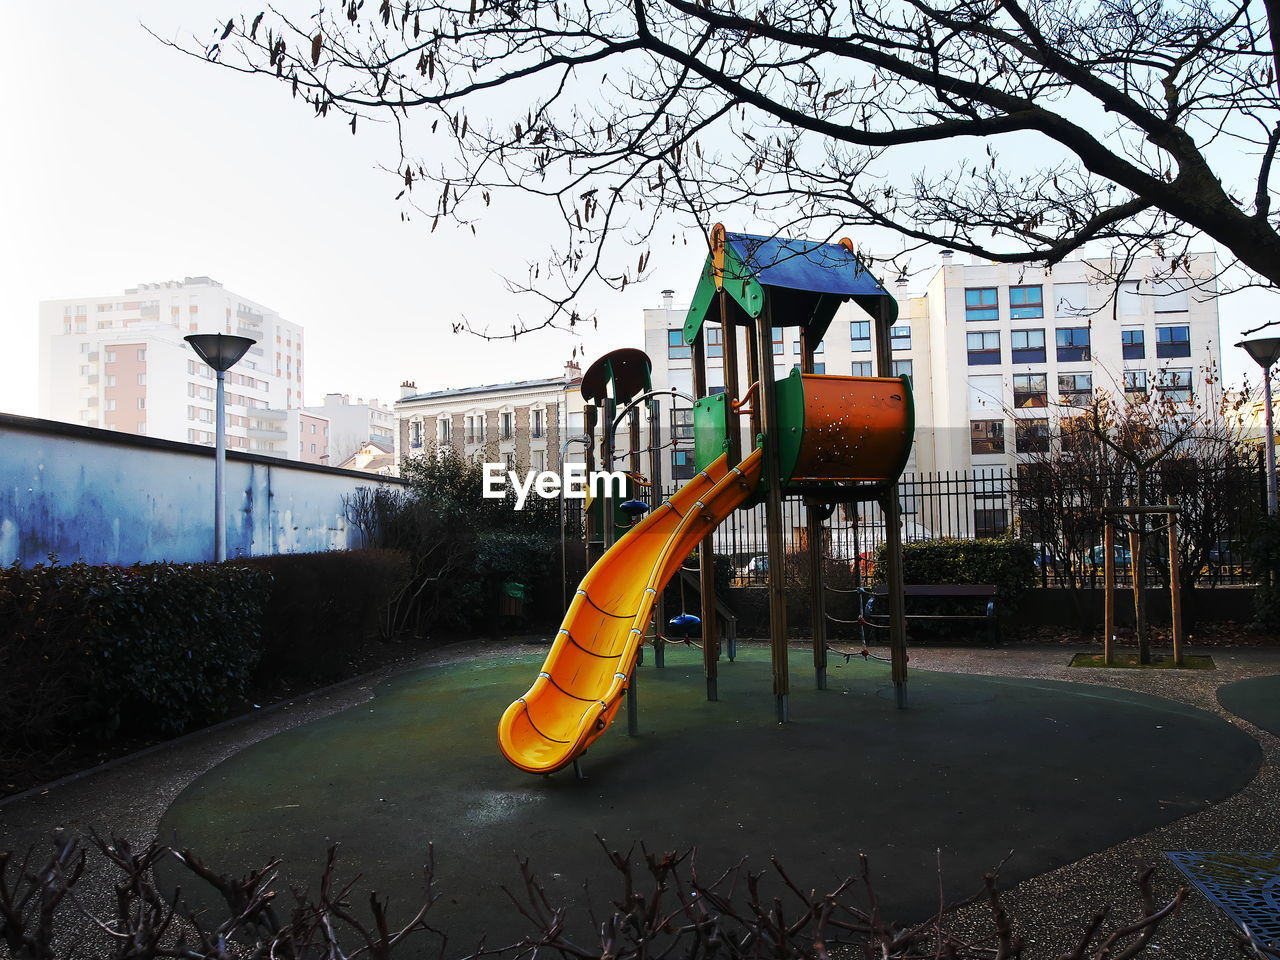 VIEW OF PLAYGROUND AGAINST TREES